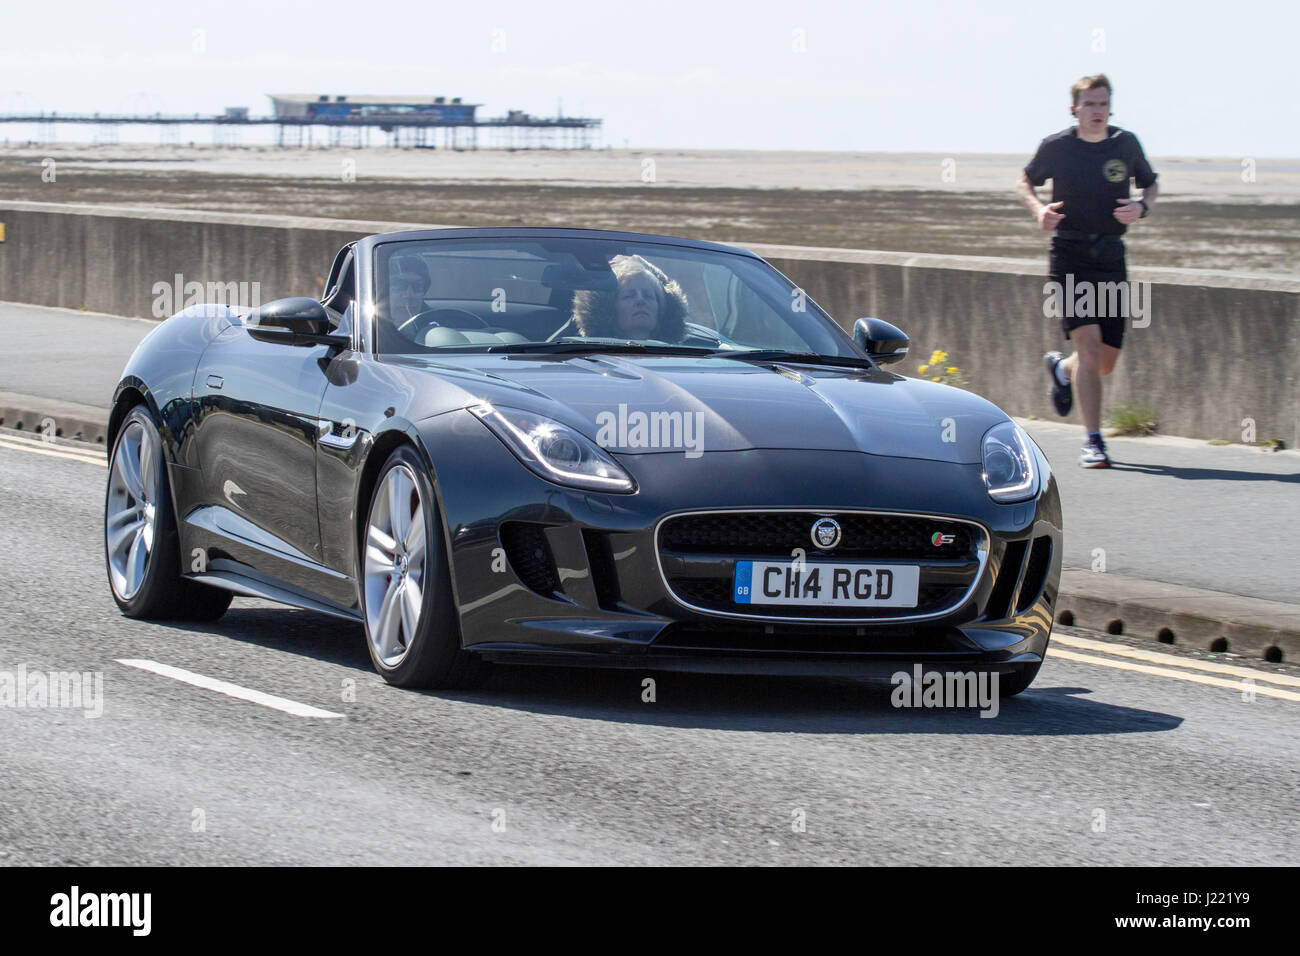 Jaguar F-Type S V8 Auto Vintage Festival and Classic Vehicle Show, with cars driving down the resort seafront and - Stock Image